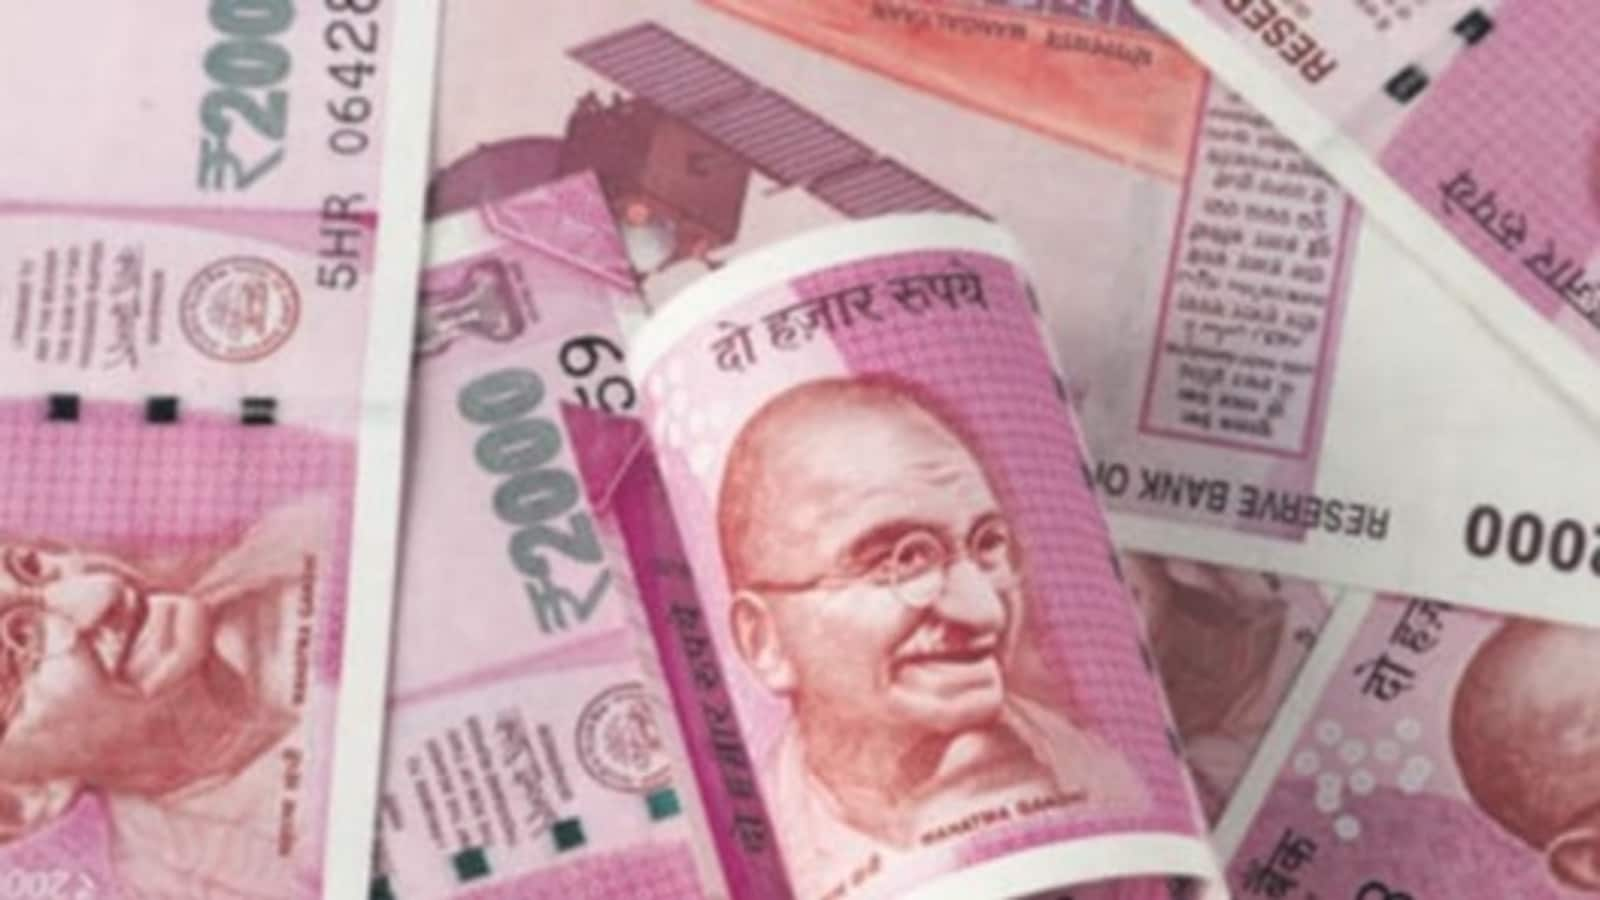 UP's GSDP shrinks 5.9 per cent in 2020-21